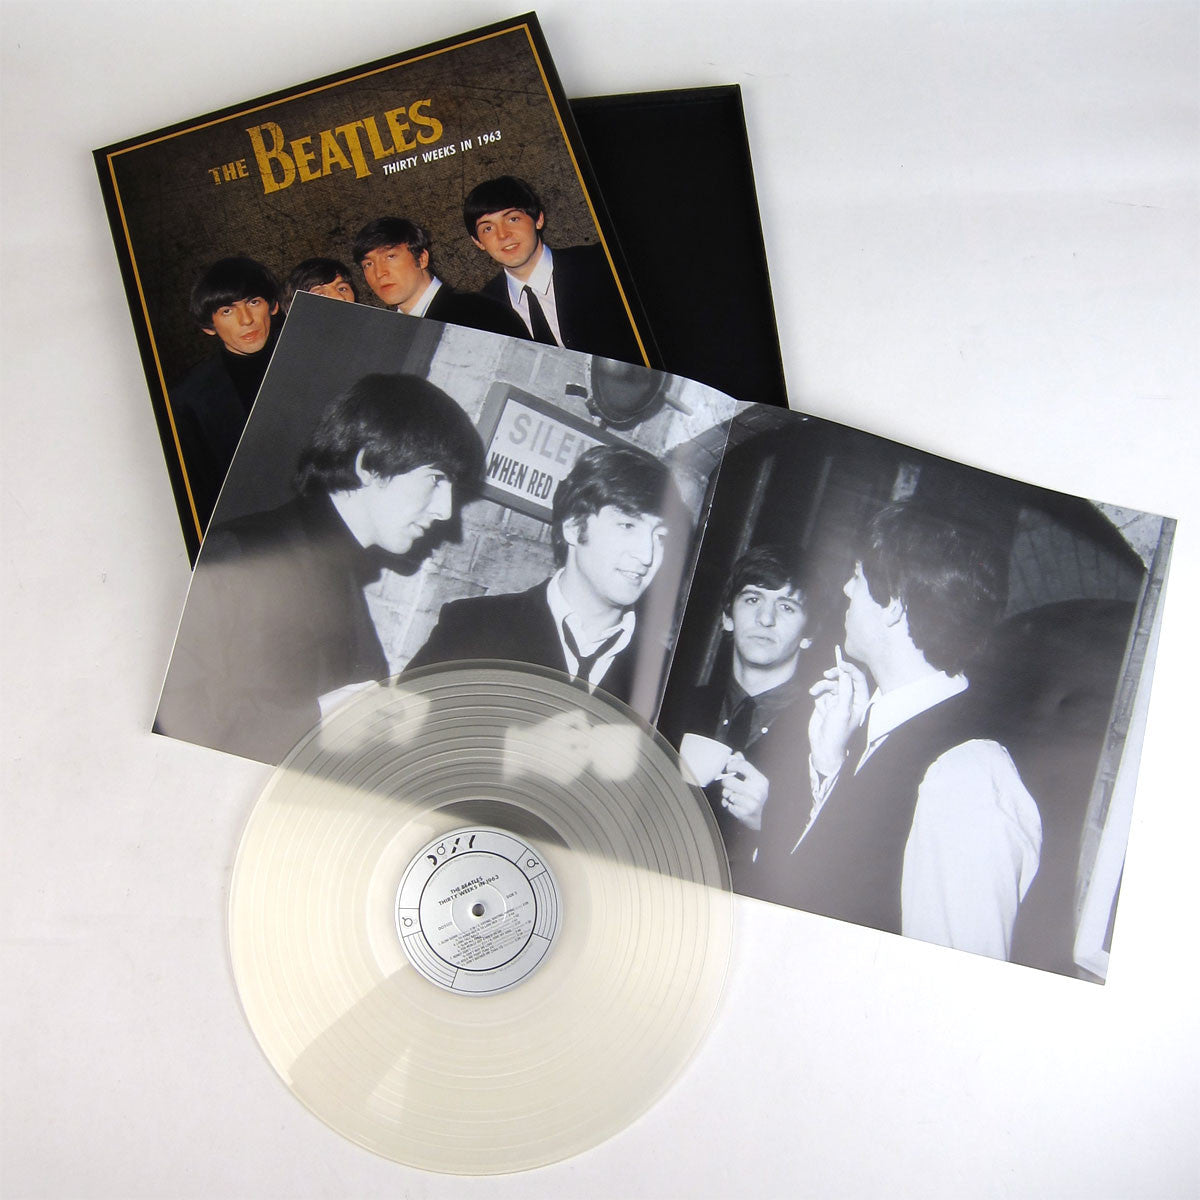 The Beatles: Thirty Weeks in 1963 (Audiophile Clear Vinyl) Vinyl LP Boxset laydown